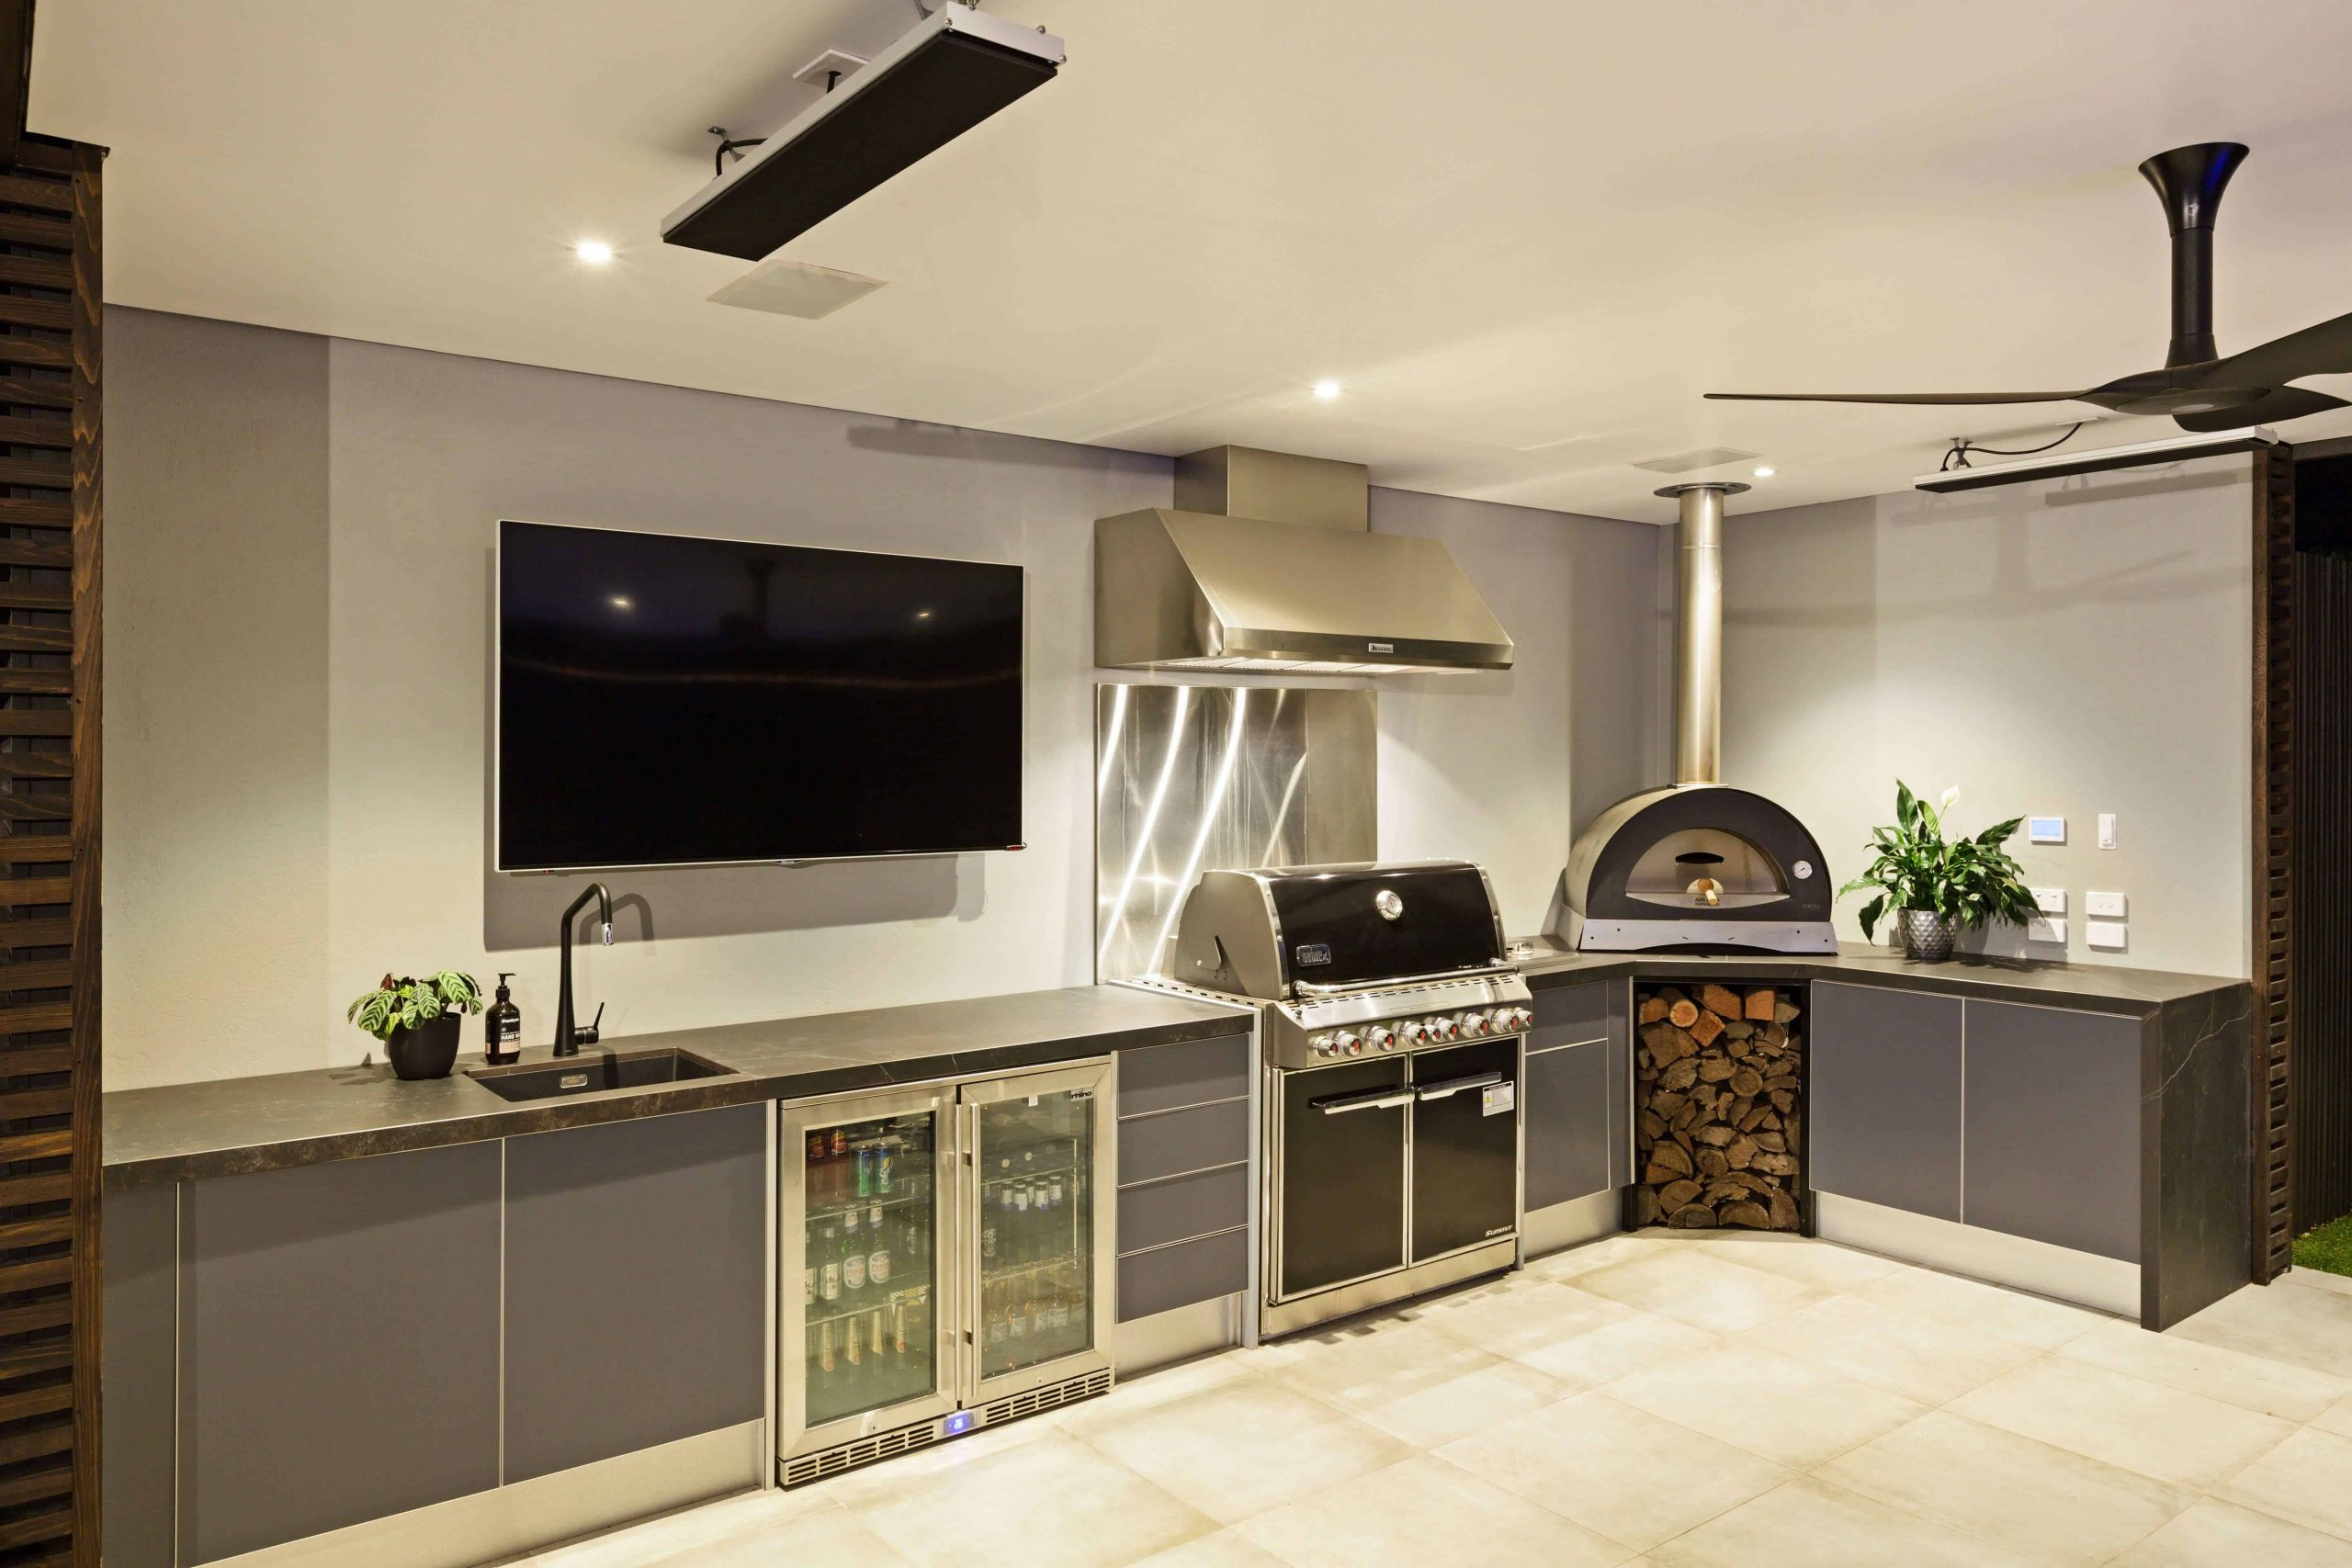 Hawthorn electrician outdoor appliance installation